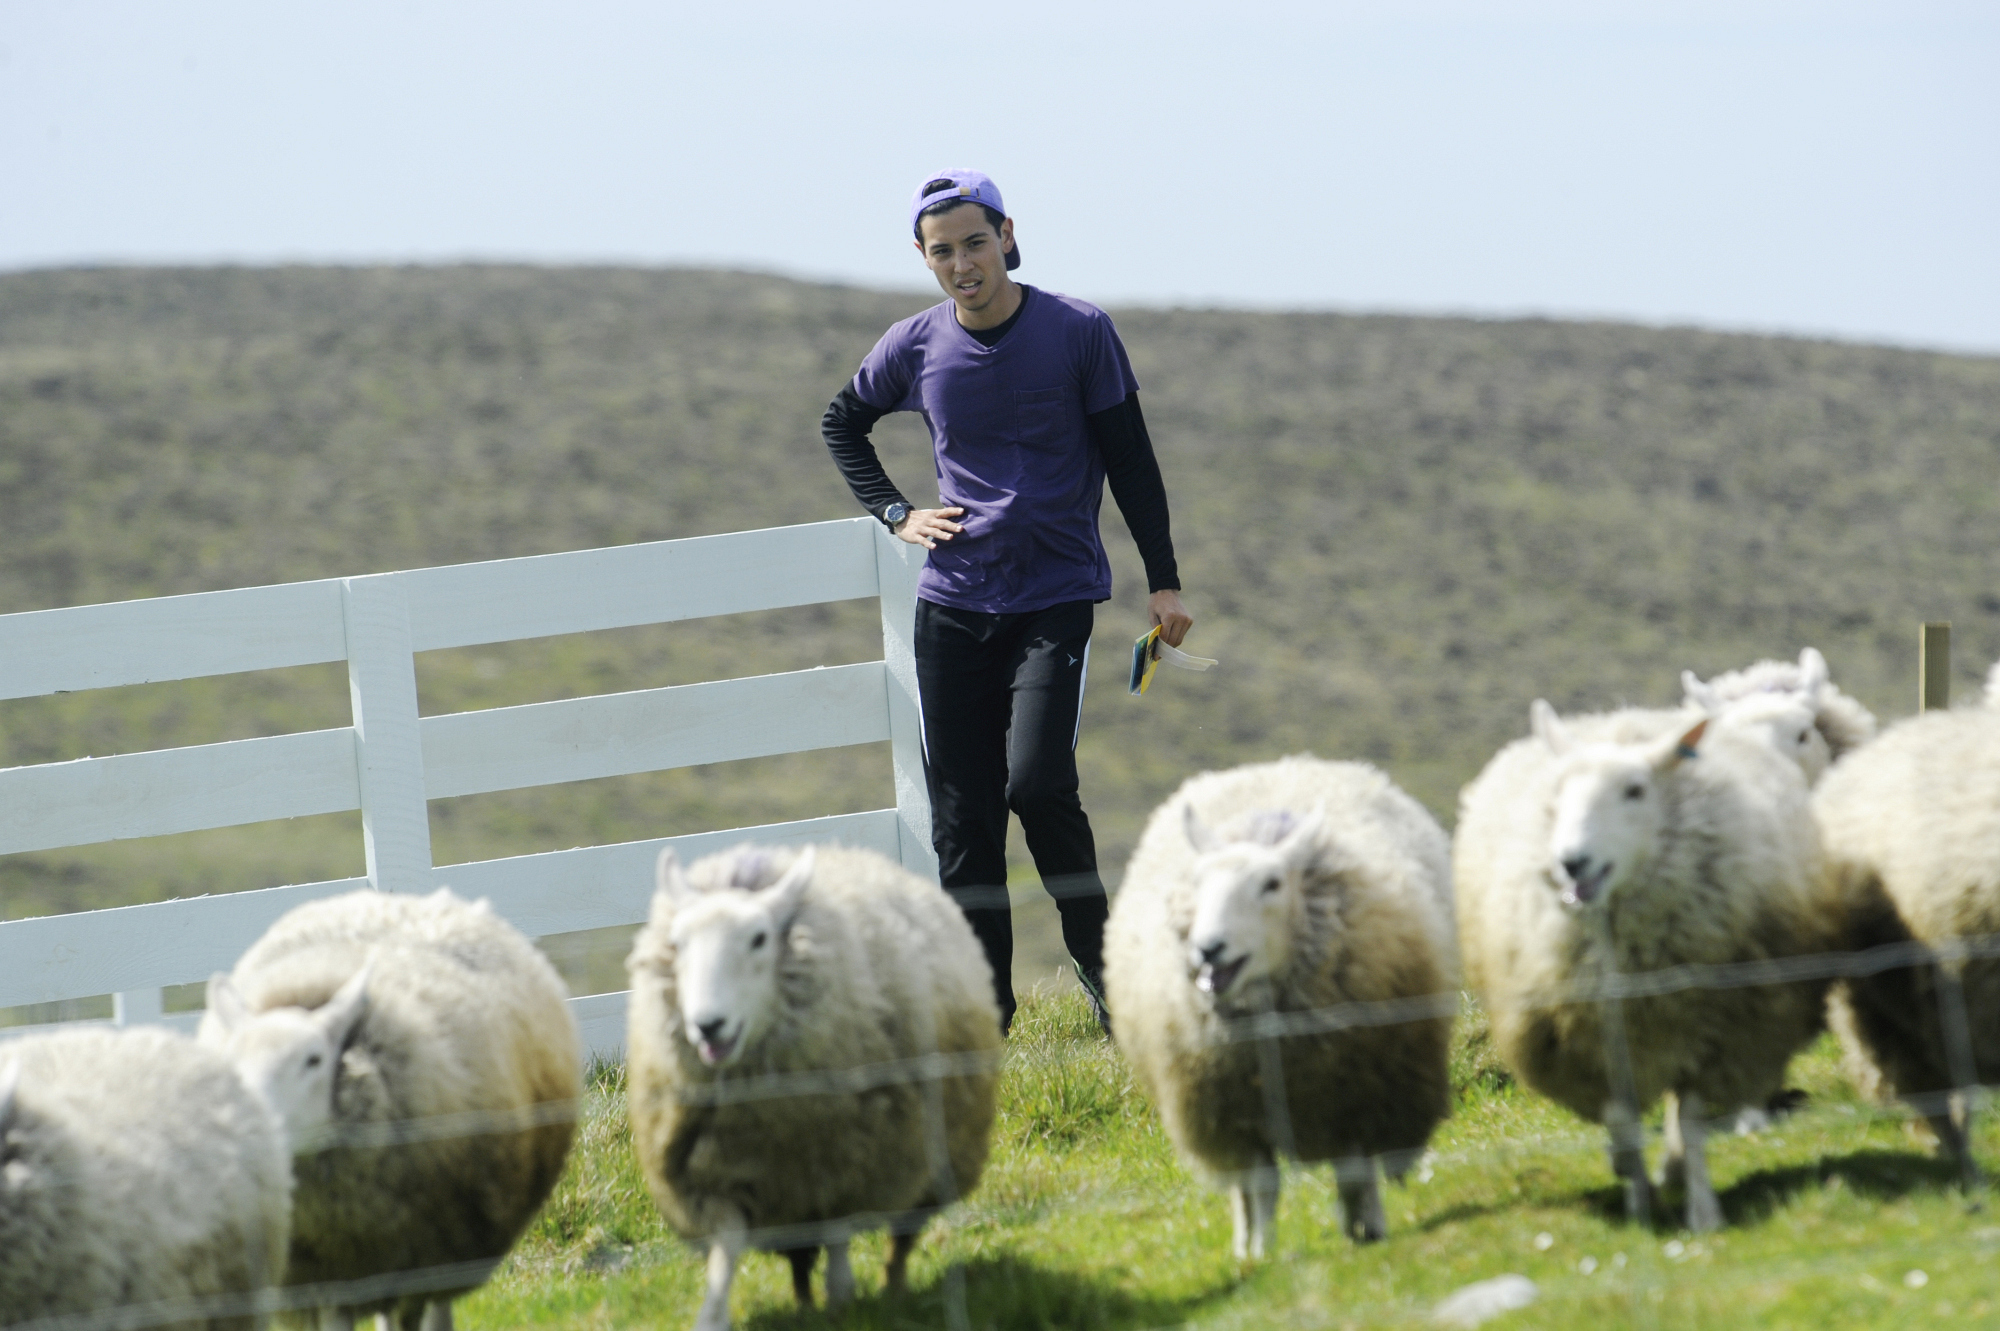 Te Jay works to herd sheep